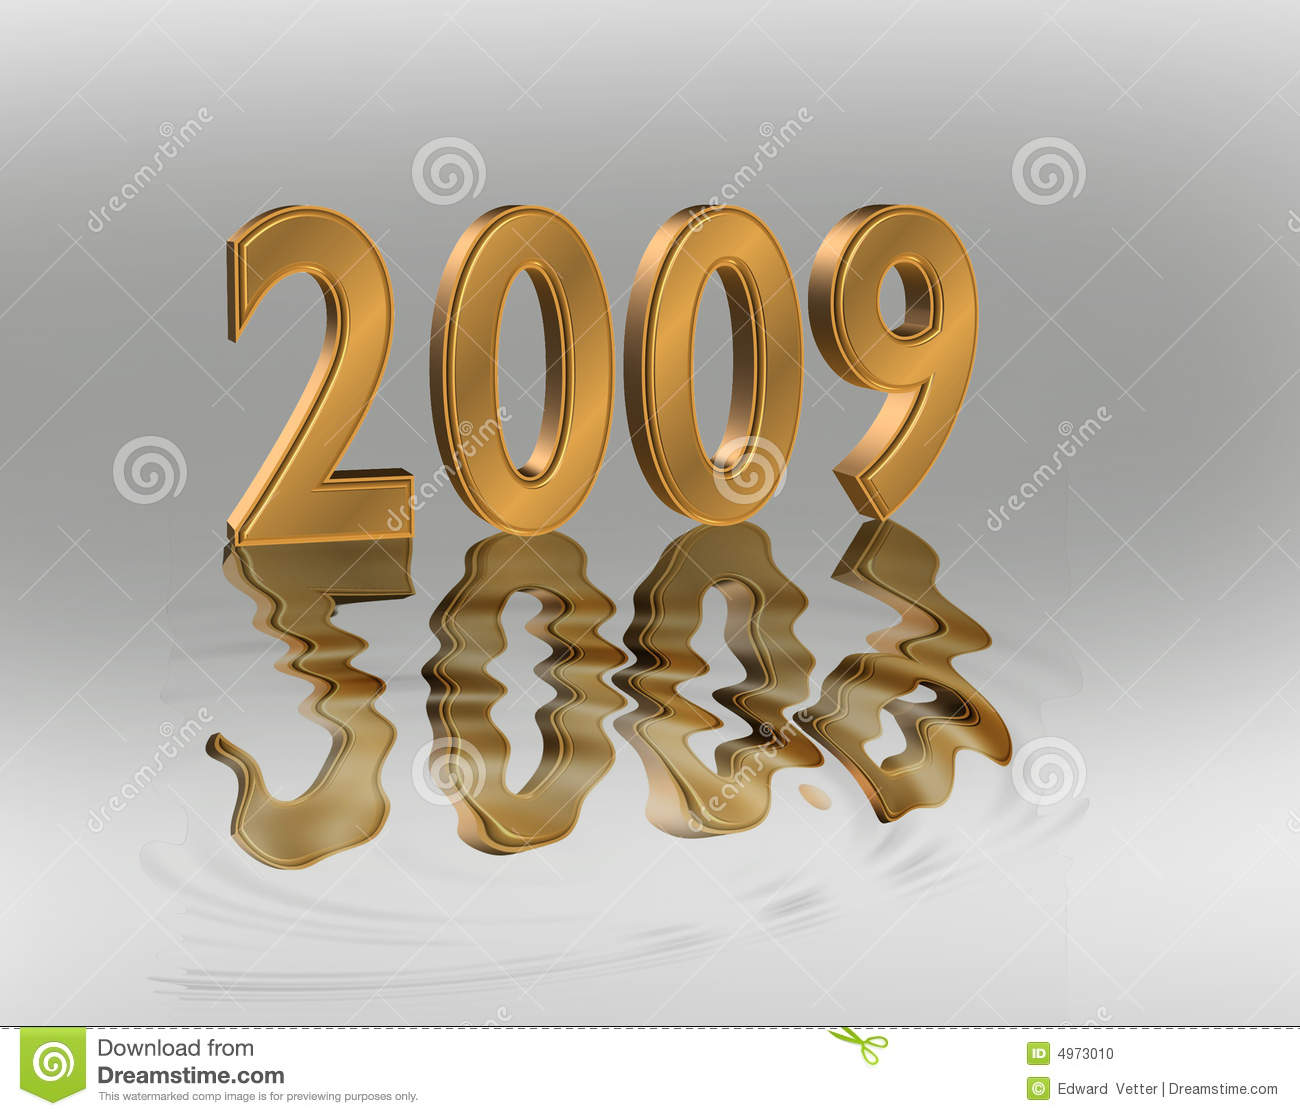 2009: New Year 2009 3D Gold Numbers Stock Photo